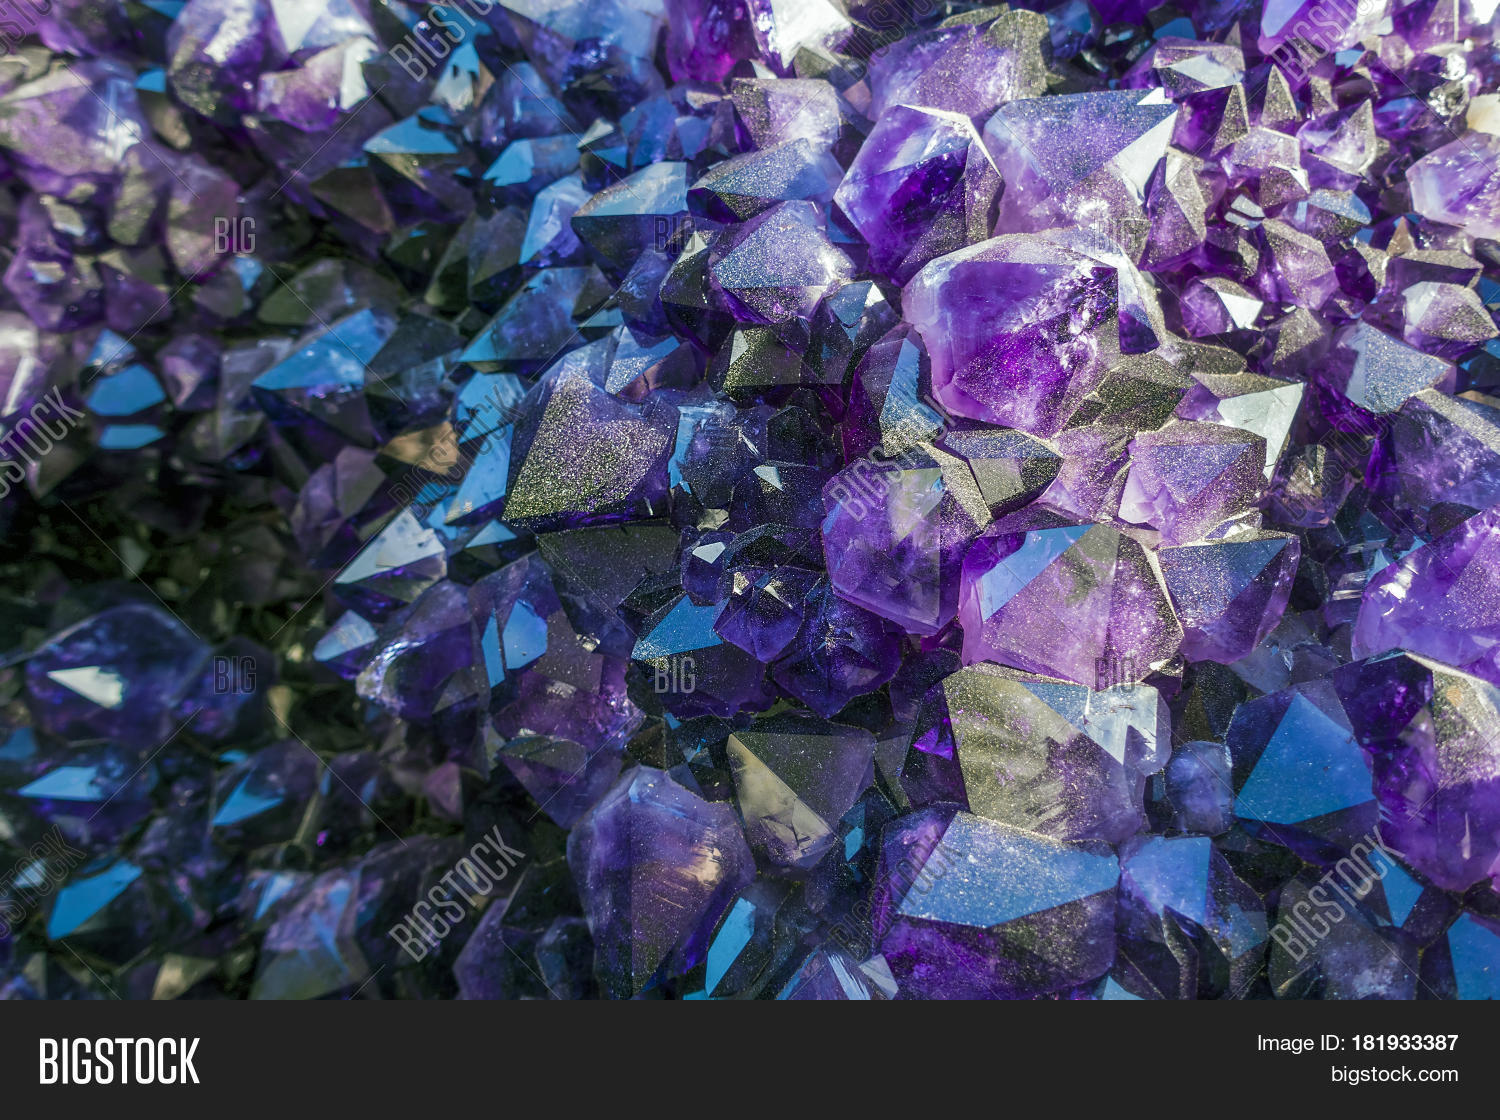 Amethyst crystals and other crystals - detail.